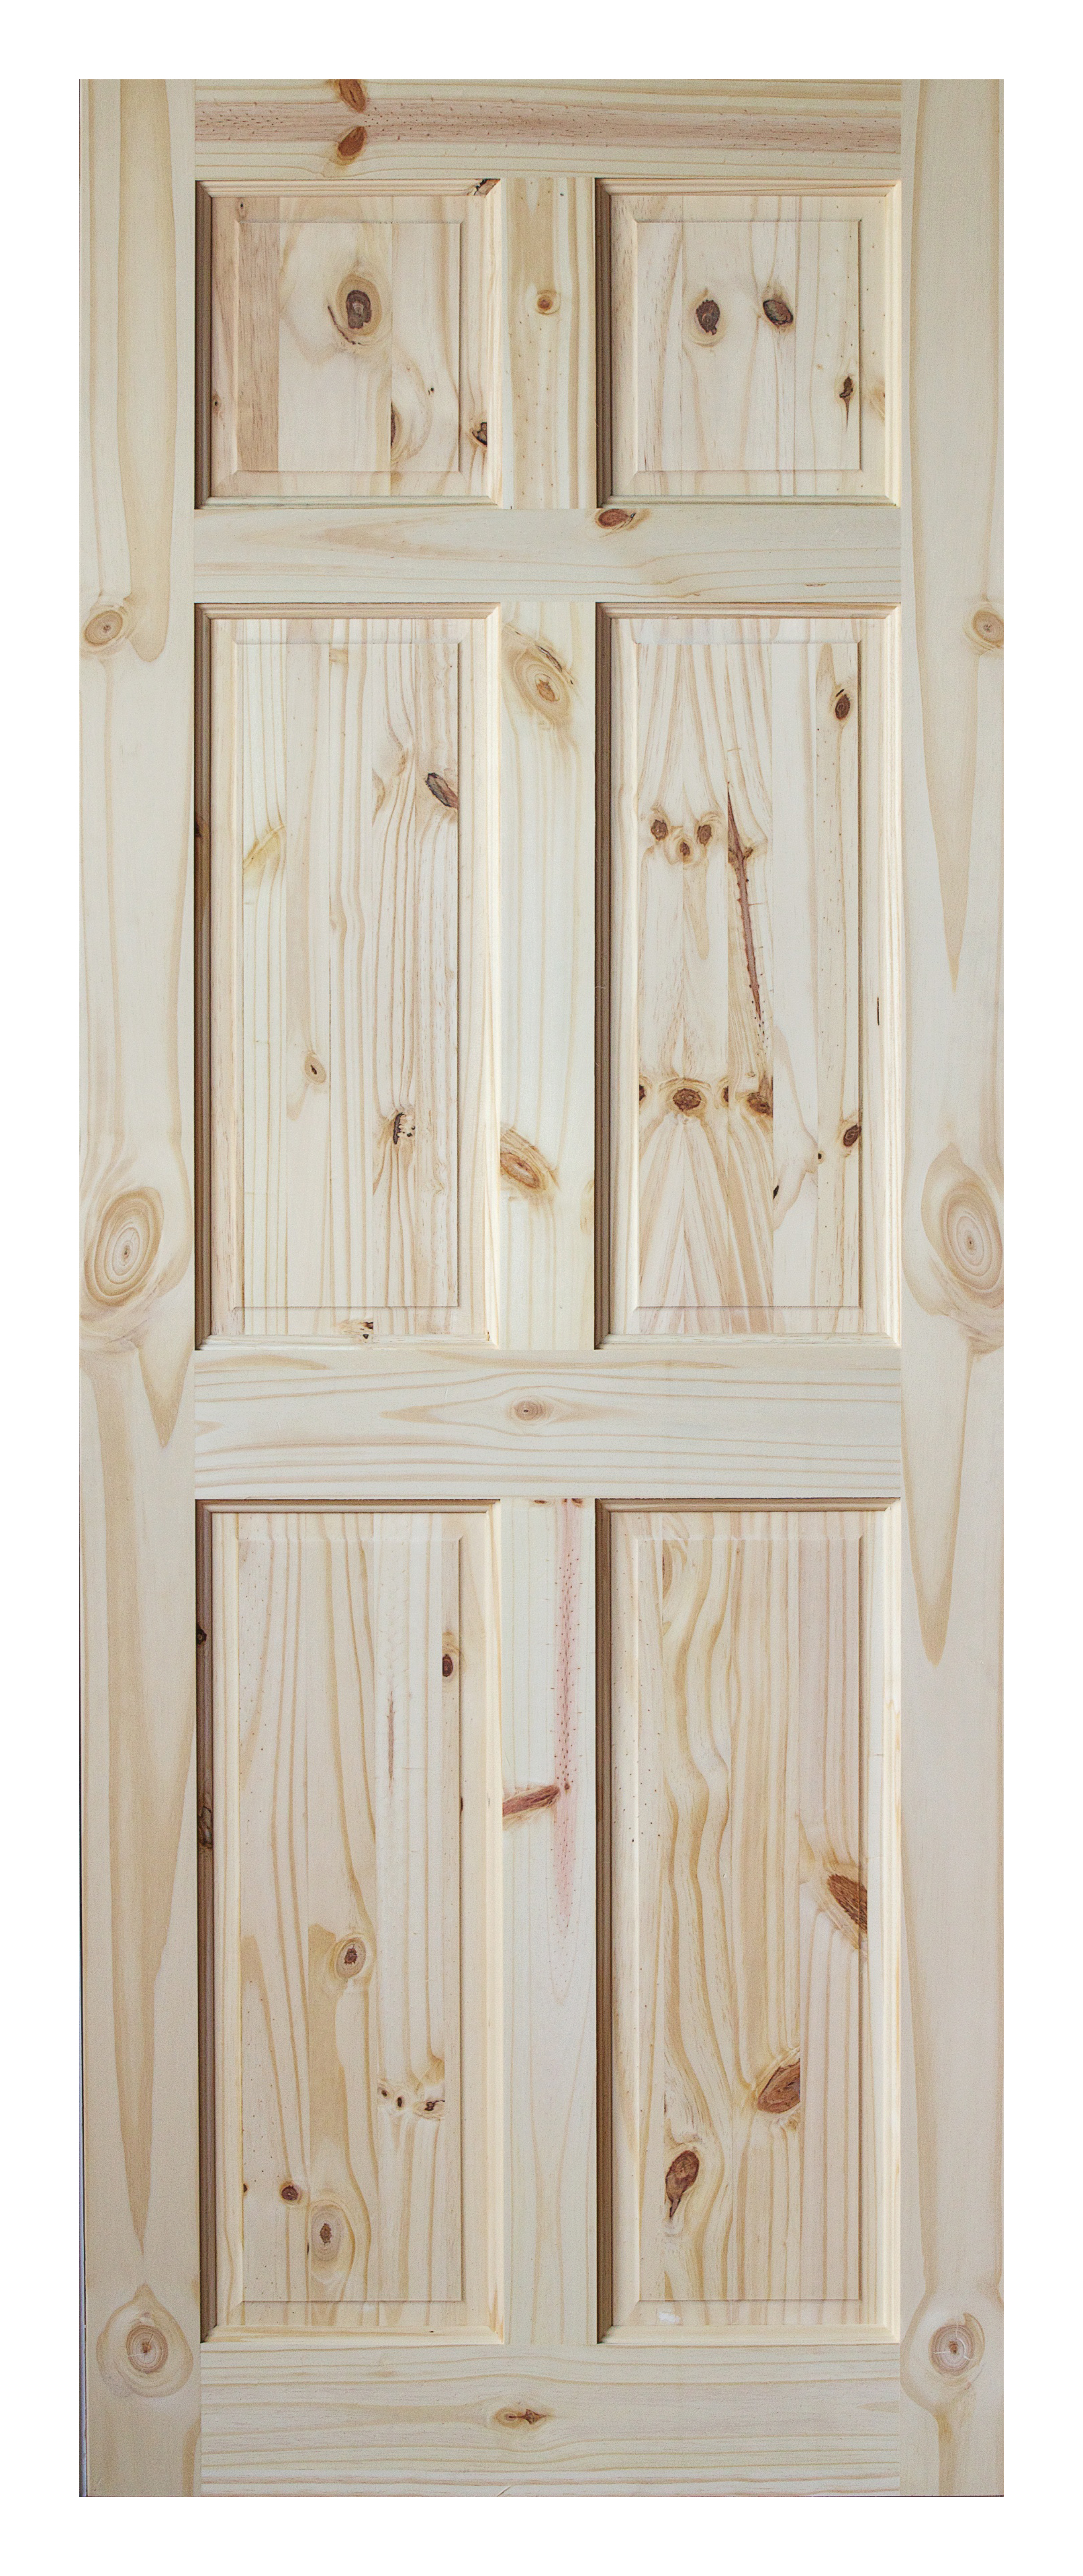 InDoors Berkley 6 Panel Interior Pine Door   Unfinished